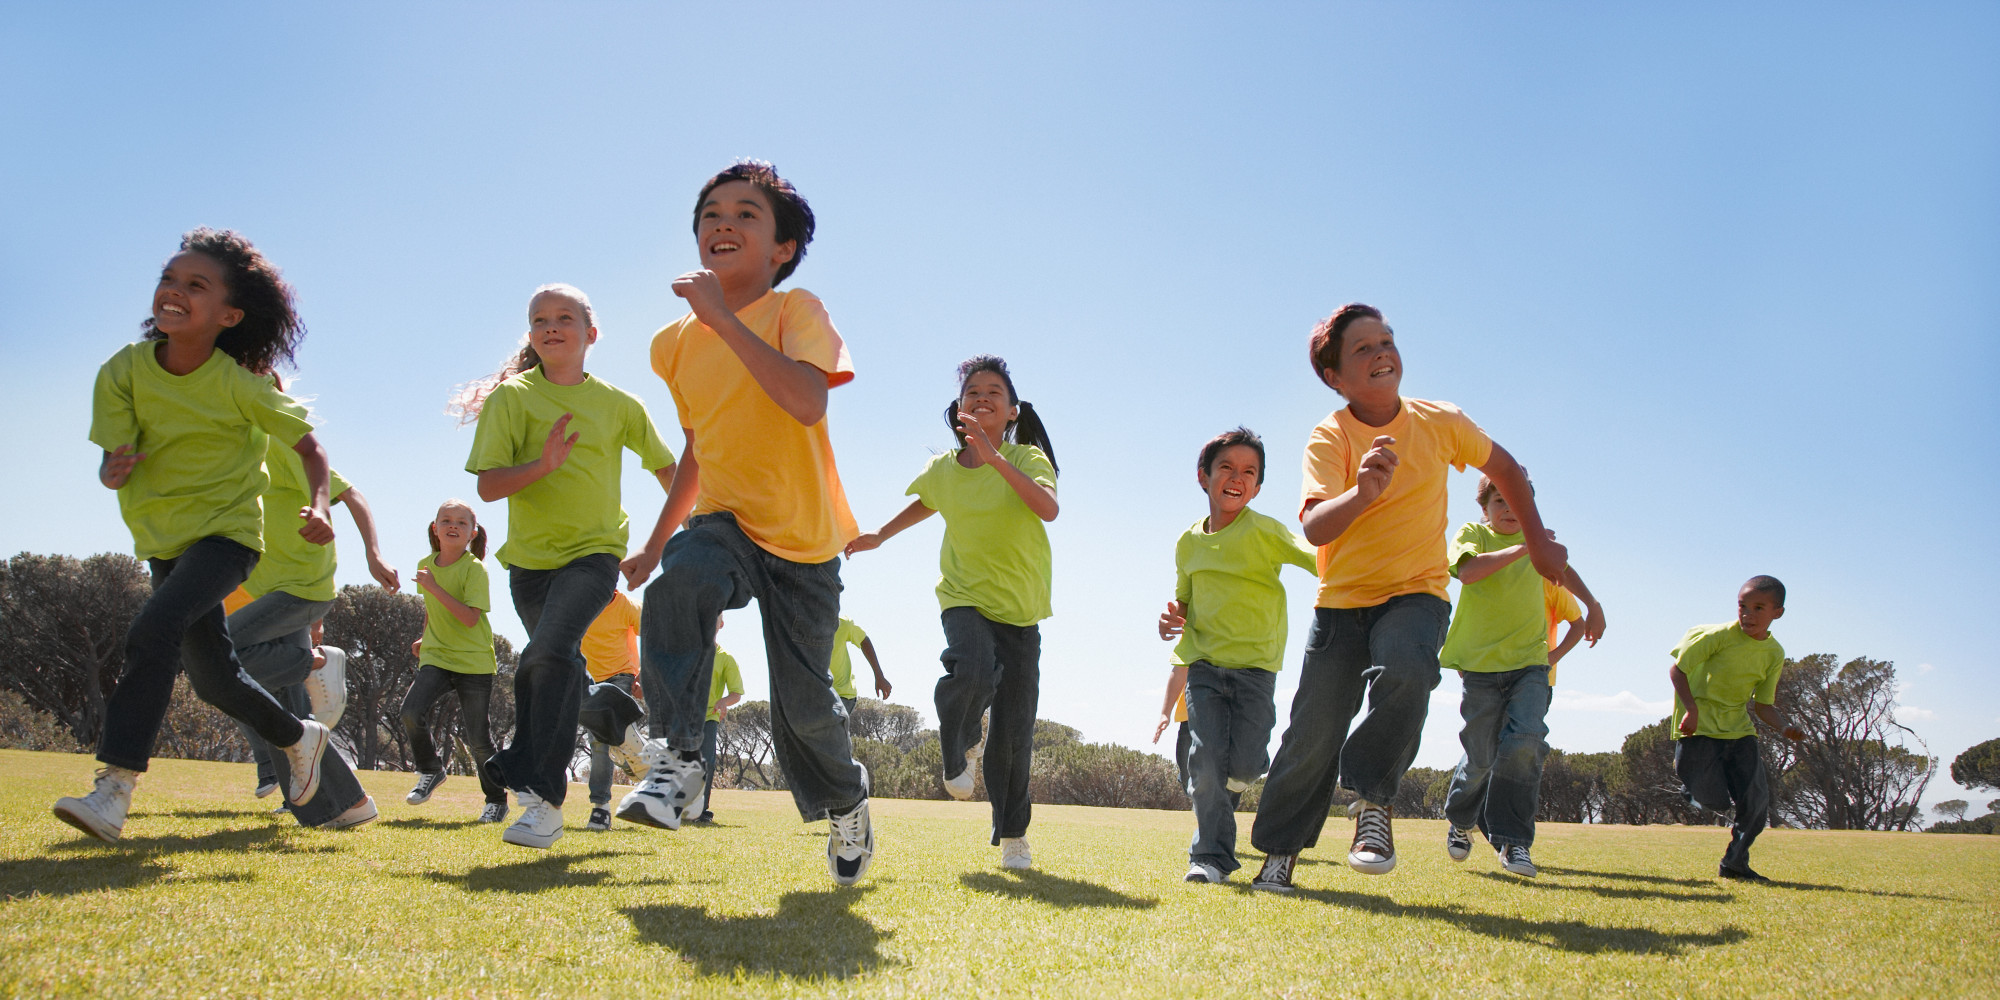 competitive sports for children